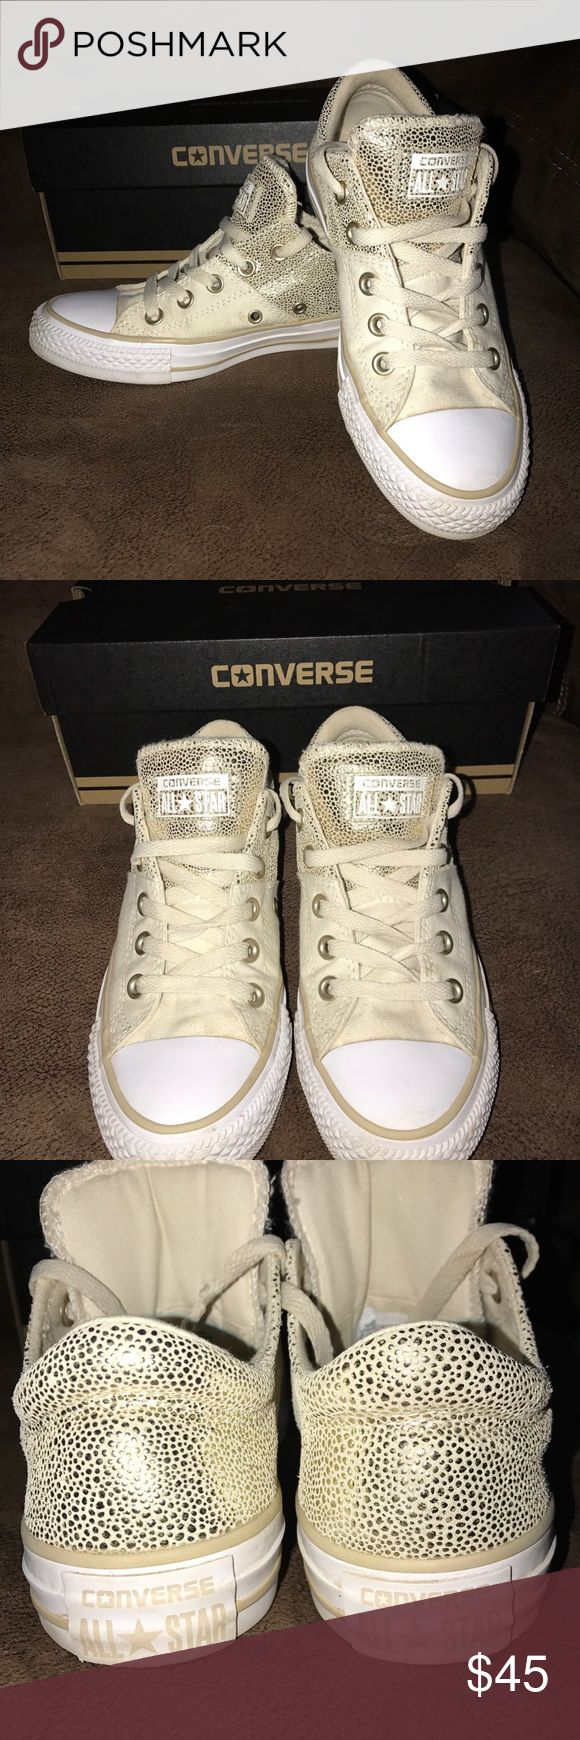 Ladies Converse Shoes In EUC a pair of Ladies Converse Shoes. My daughter wore them twice and they hurt her feet. I paid $60 for them so ur getting a steal!! They are size 6 in Ladies. Converse Shoes Sneakers